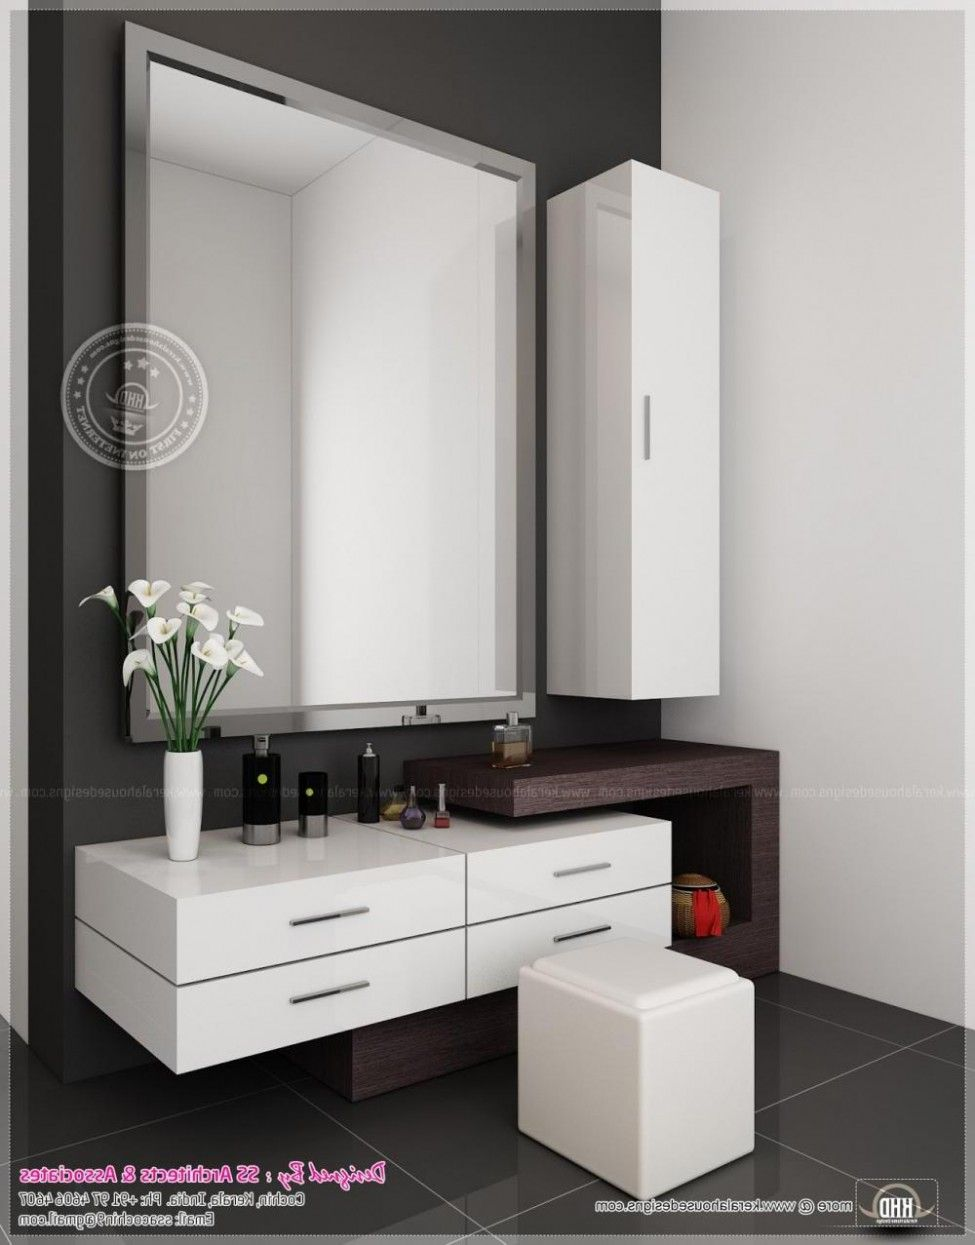 Dressing Table Minimalist And Modern Latest dressing table design in ...